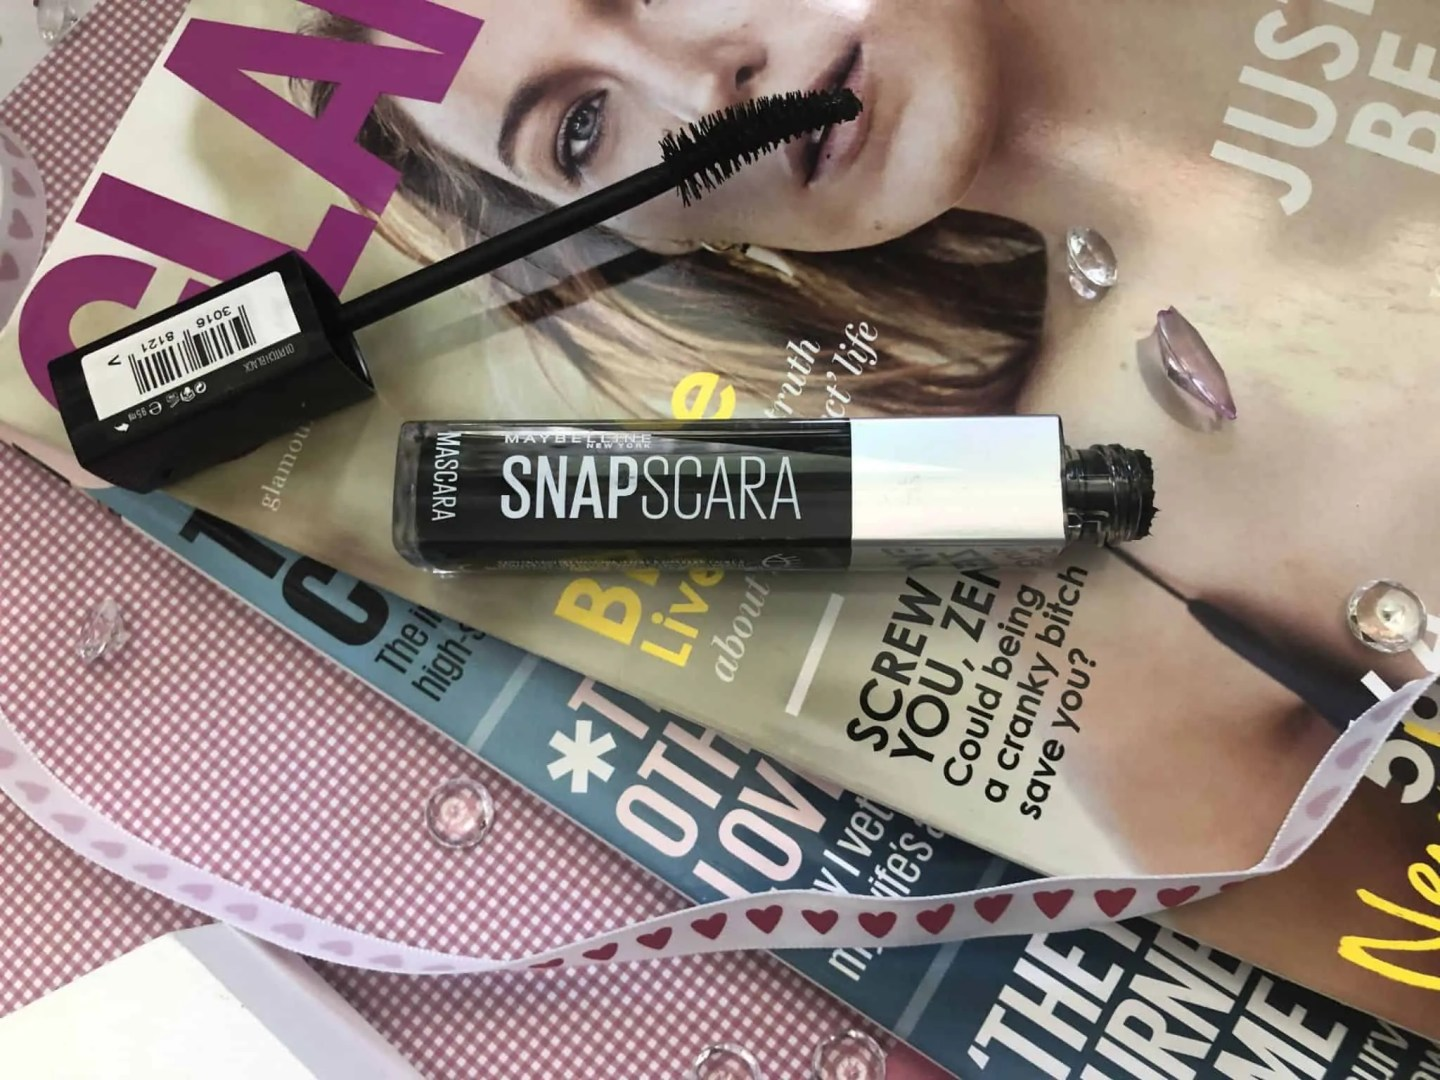 Maybelline Snapscara makes applying mascara as easy as 123 1